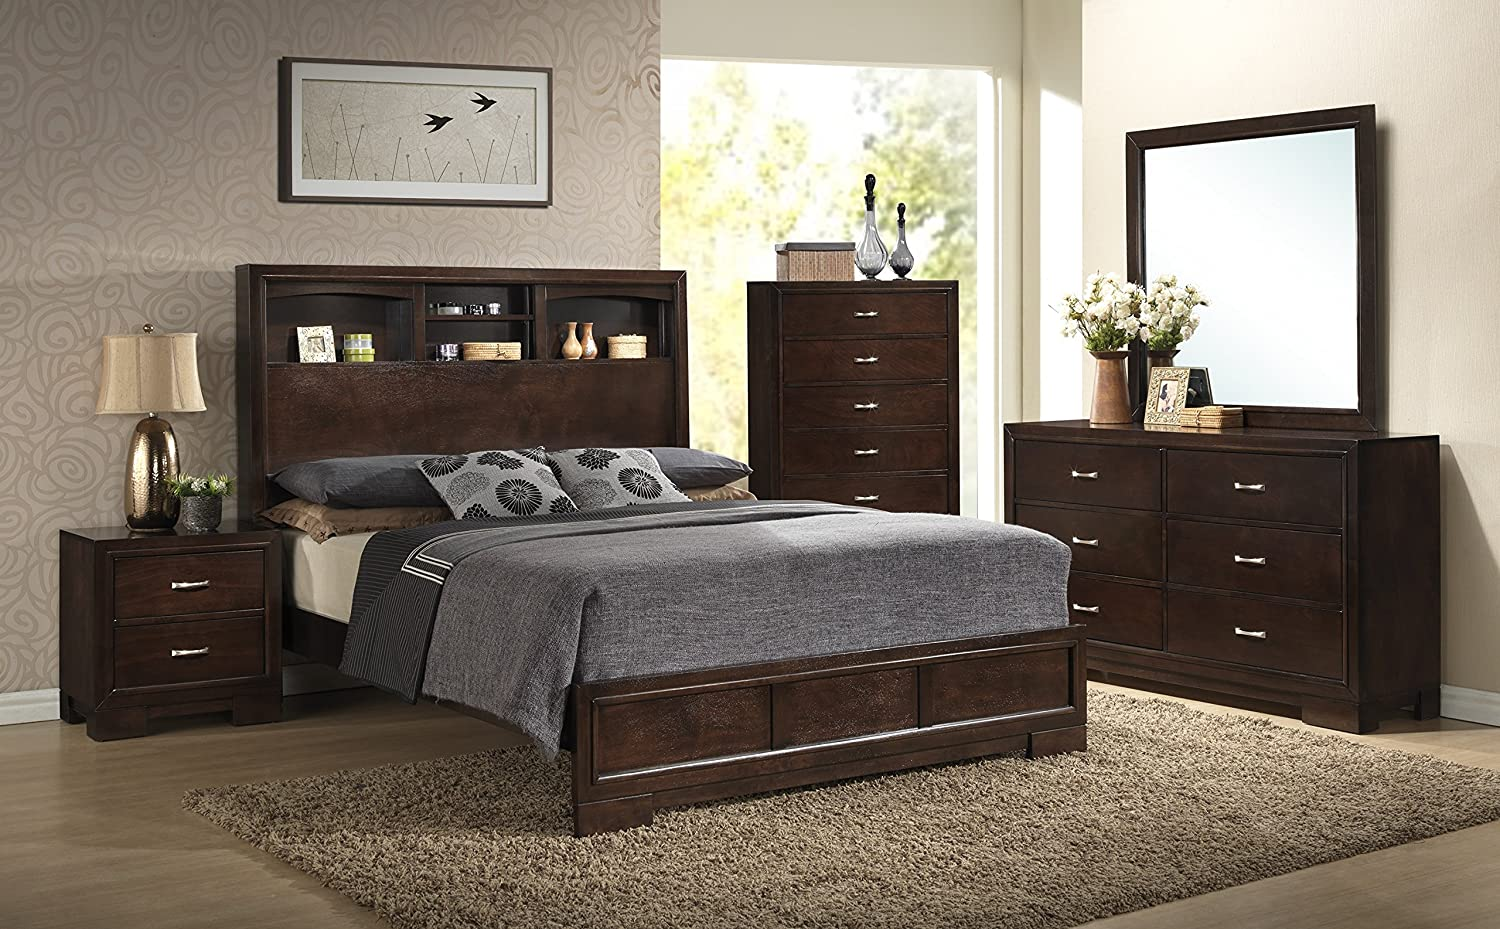 Roundhill Furniture Montana Modern 5-Piece Wood Bedroom Set with Bed, Dresser, Mirror, Nightstand, Chest, King, Walnut